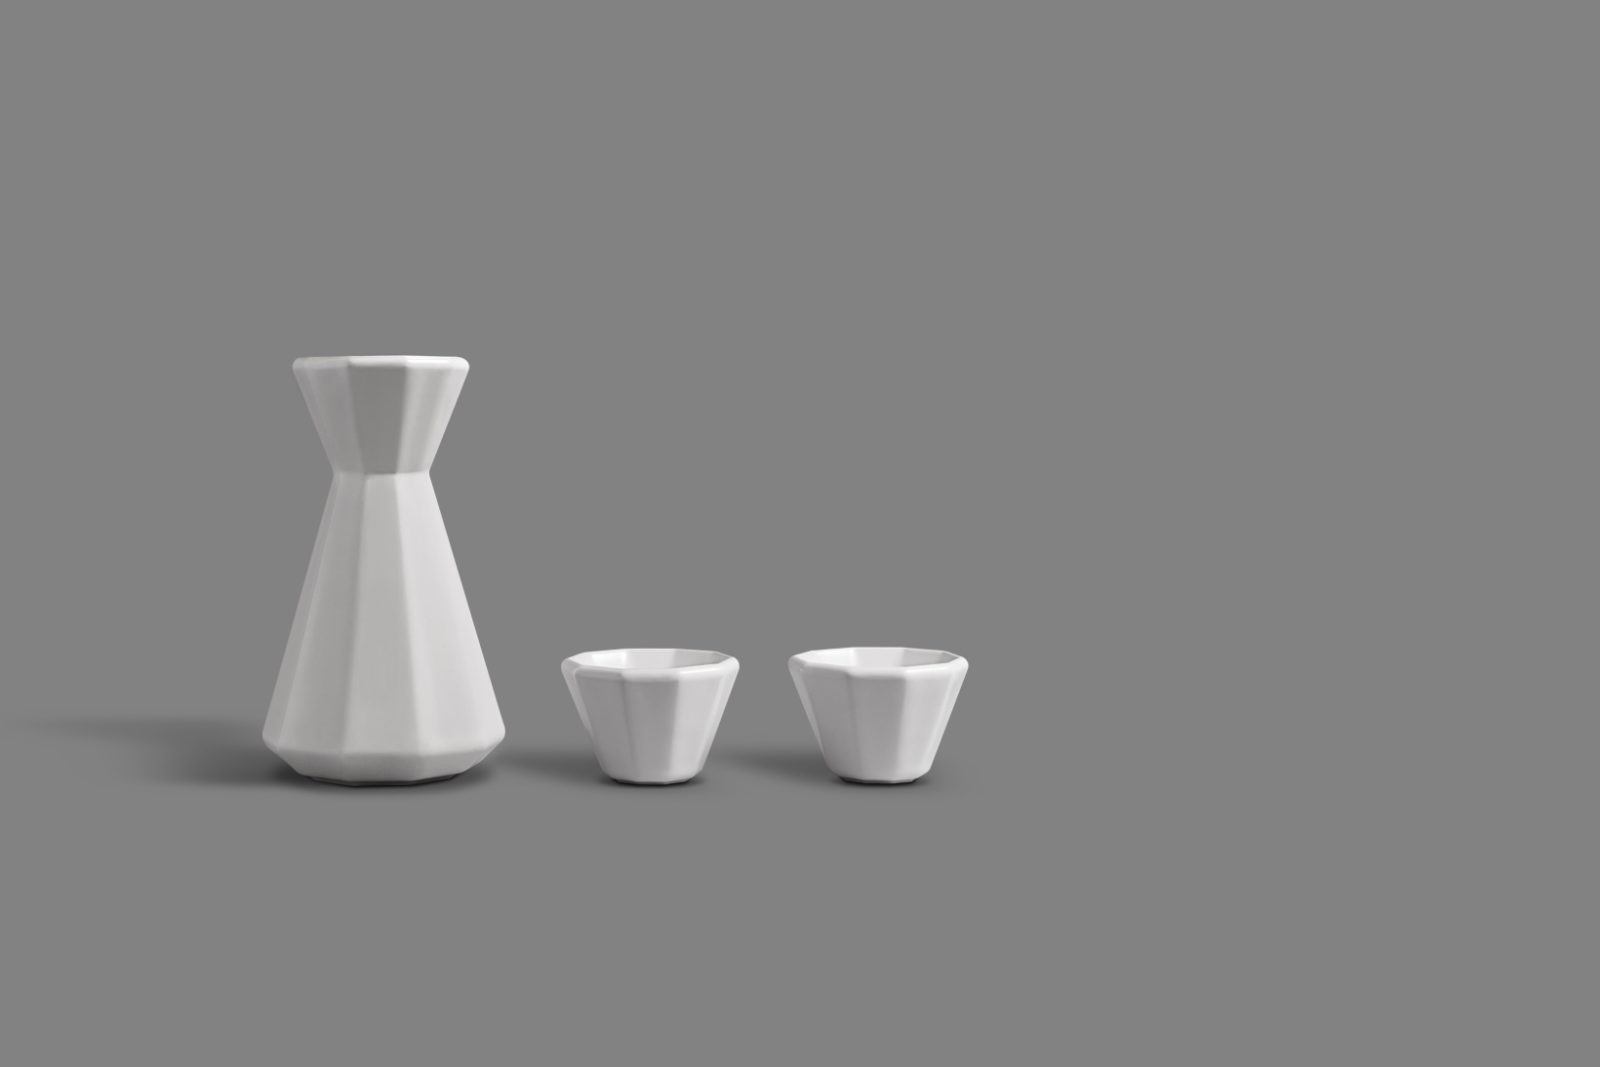 Lilium Carafe & Cup Set designed for OTHR